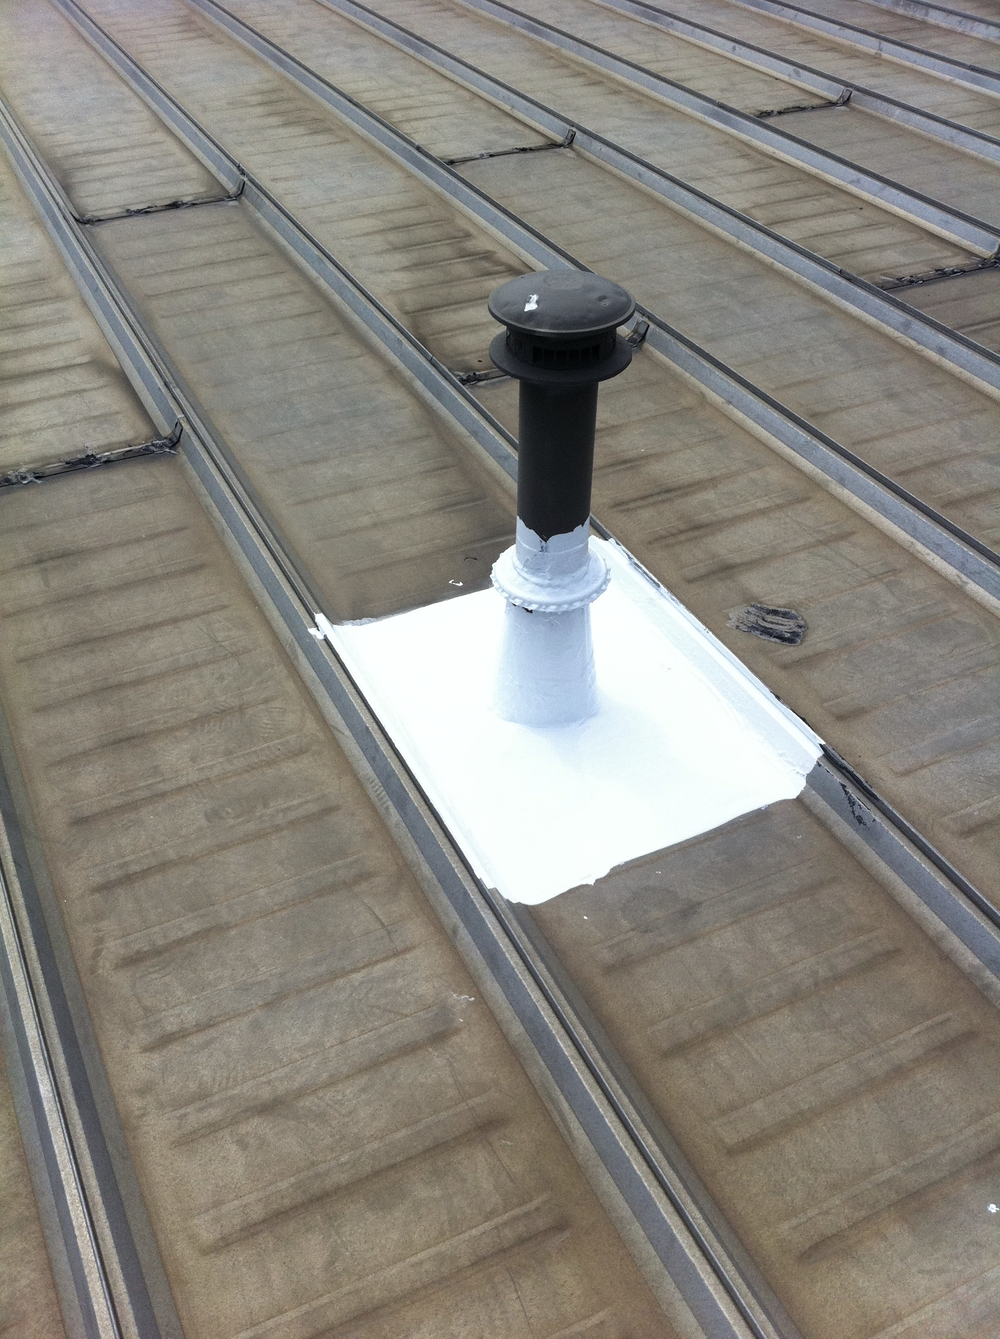 leaking metal roof stack sealed on a standing seam roof.